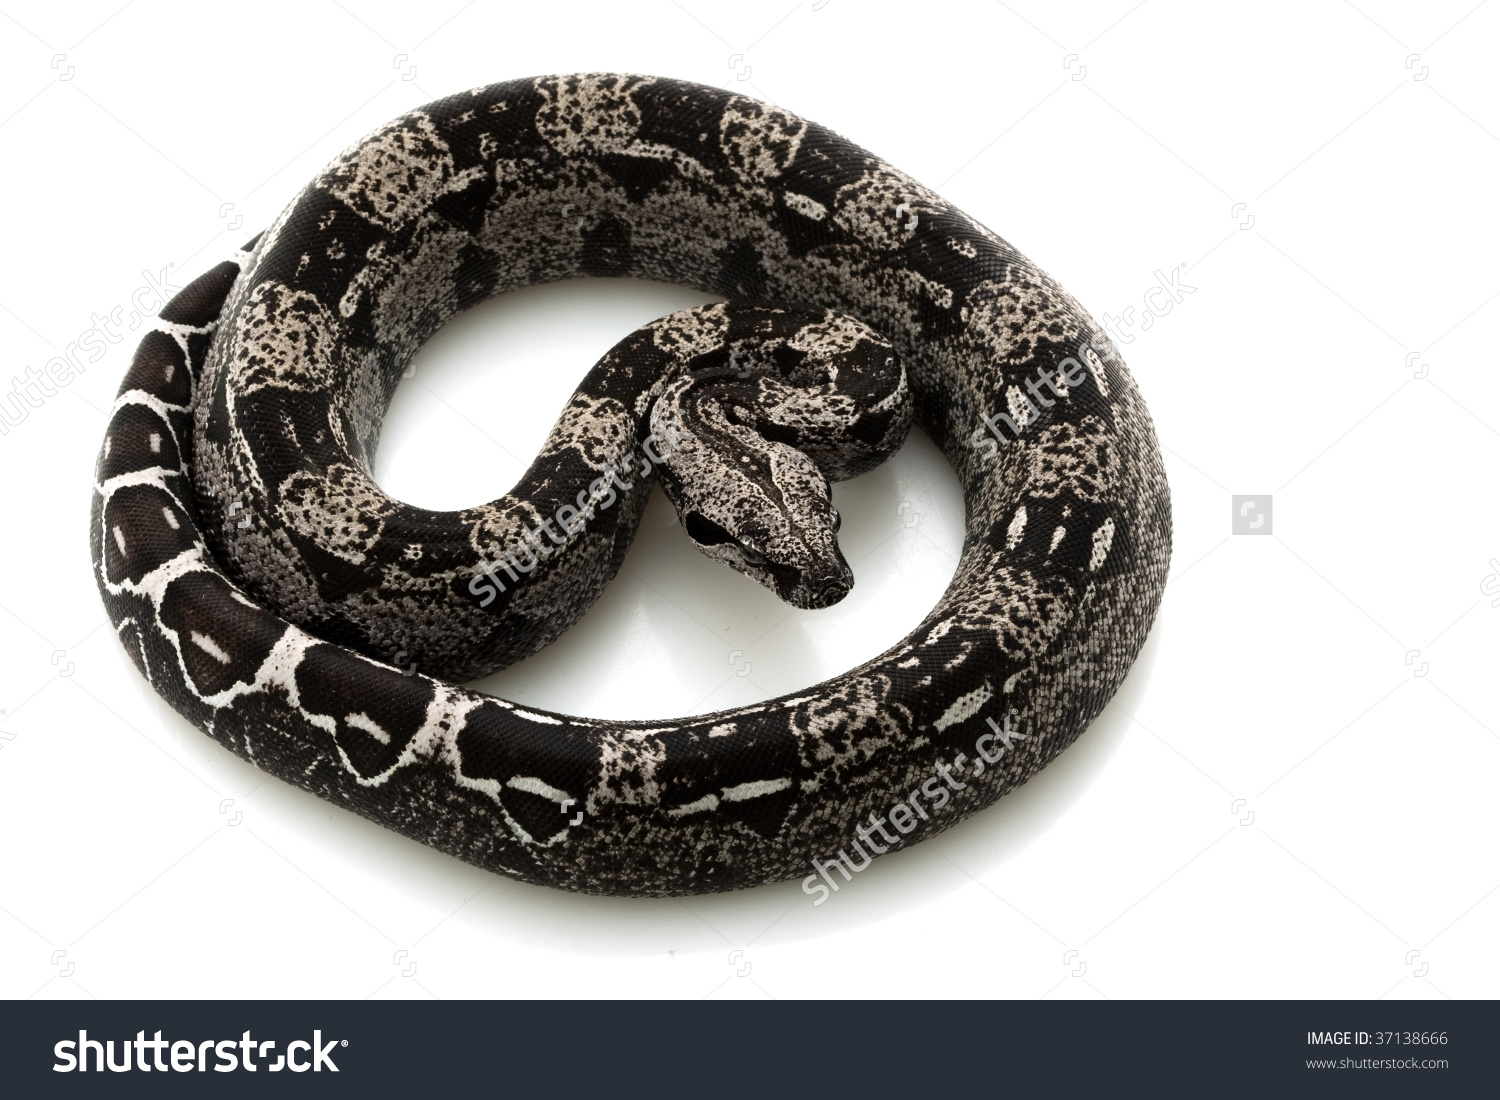 Anerythristic Columbian Redtailed Boa Boa Constrictor Stock Photo.